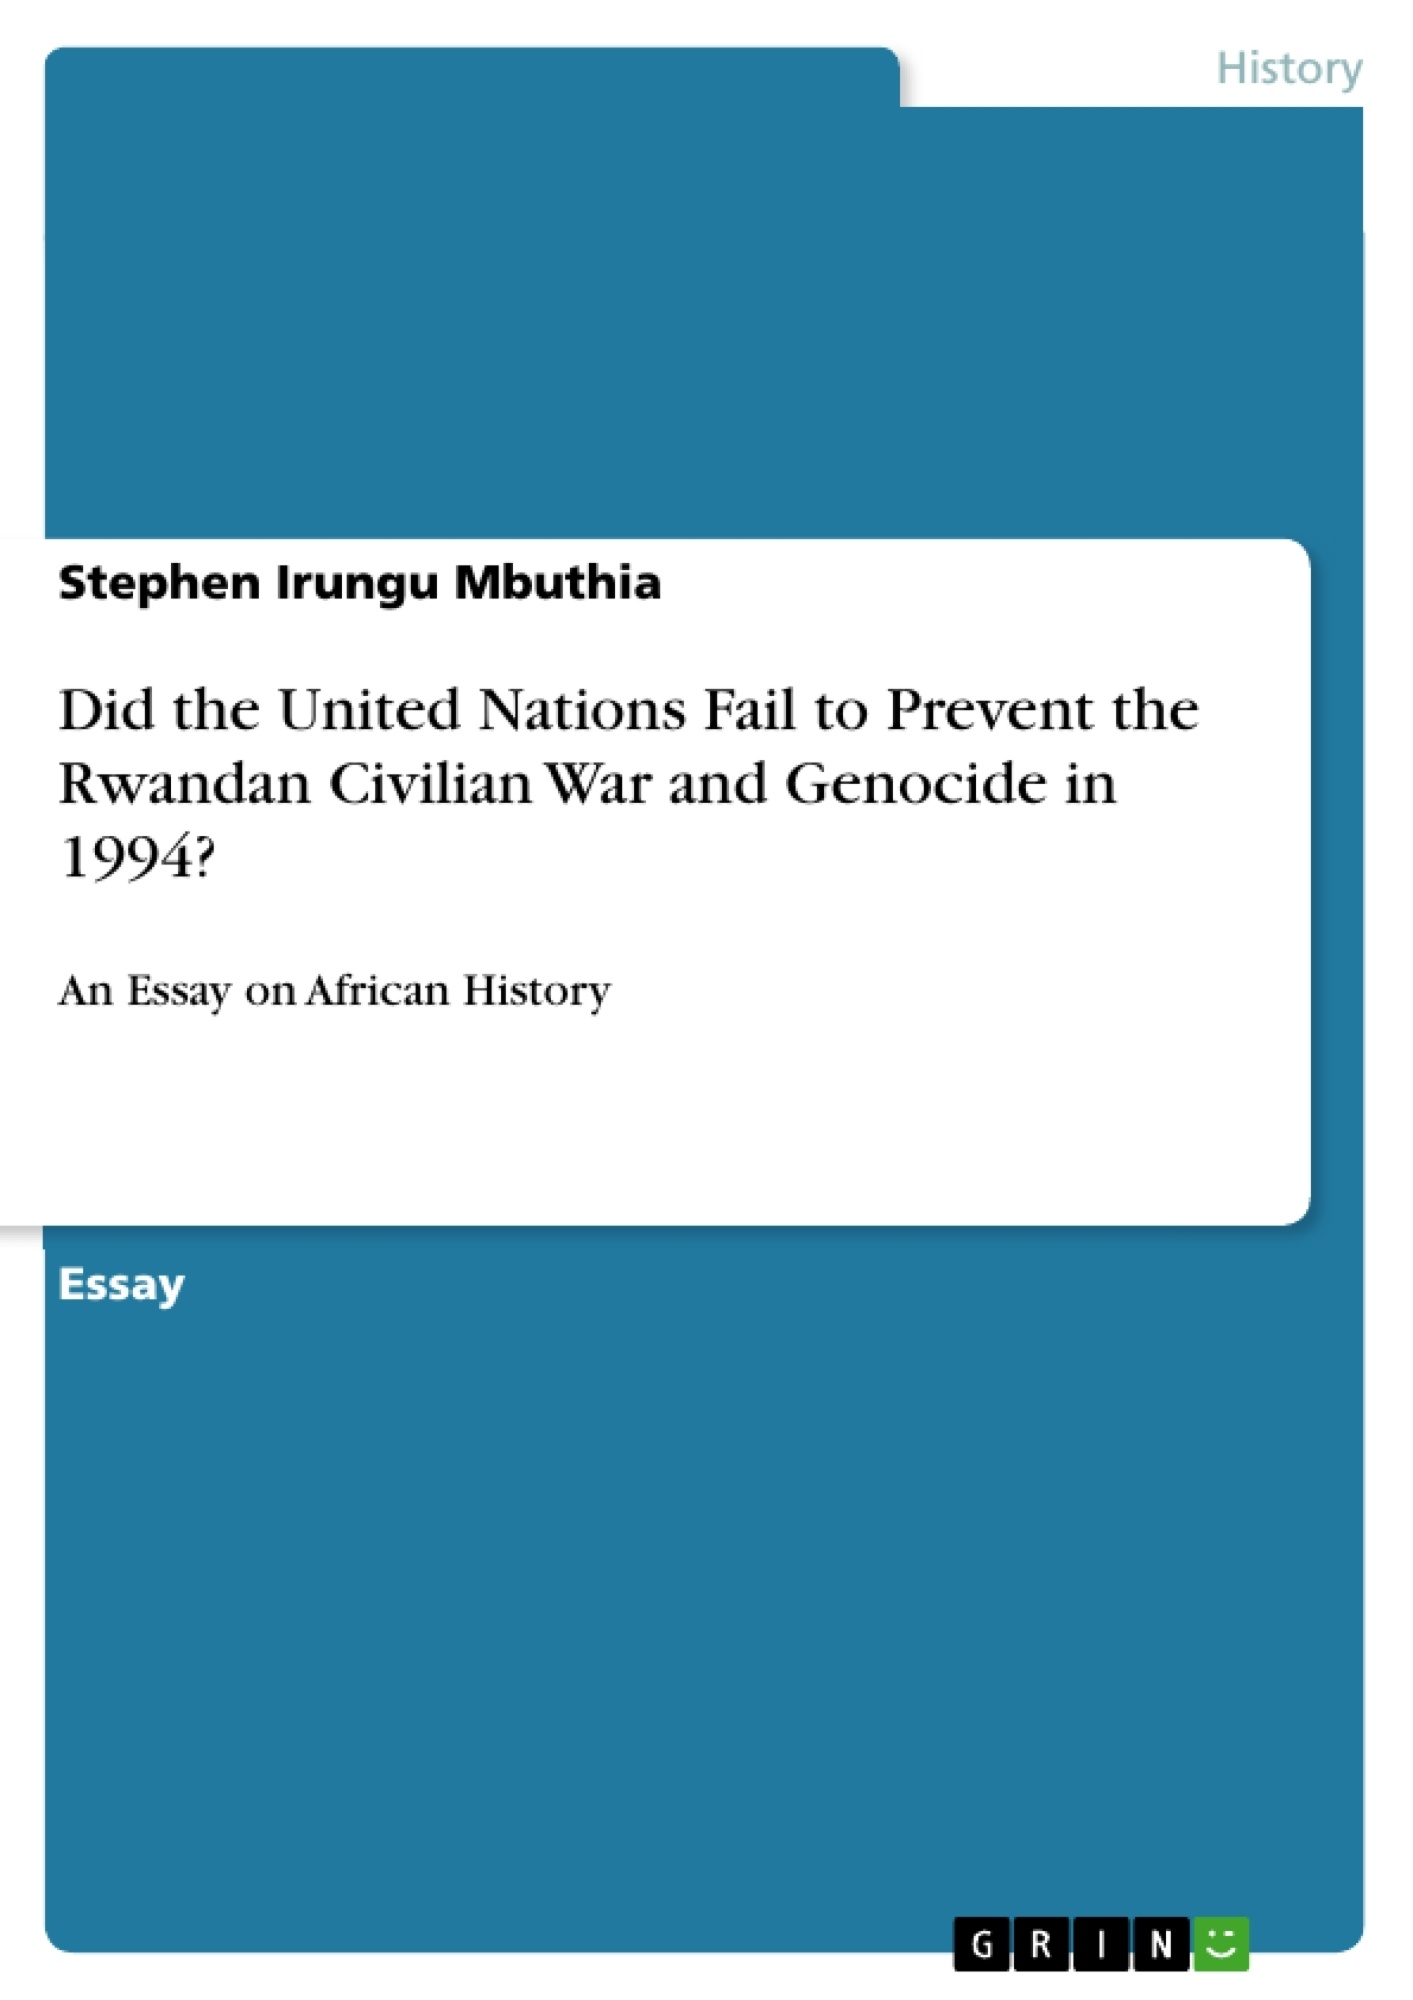 Title: Did the United Nations Fail to Prevent the Rwandan Civilian War and Genocide in 1994?